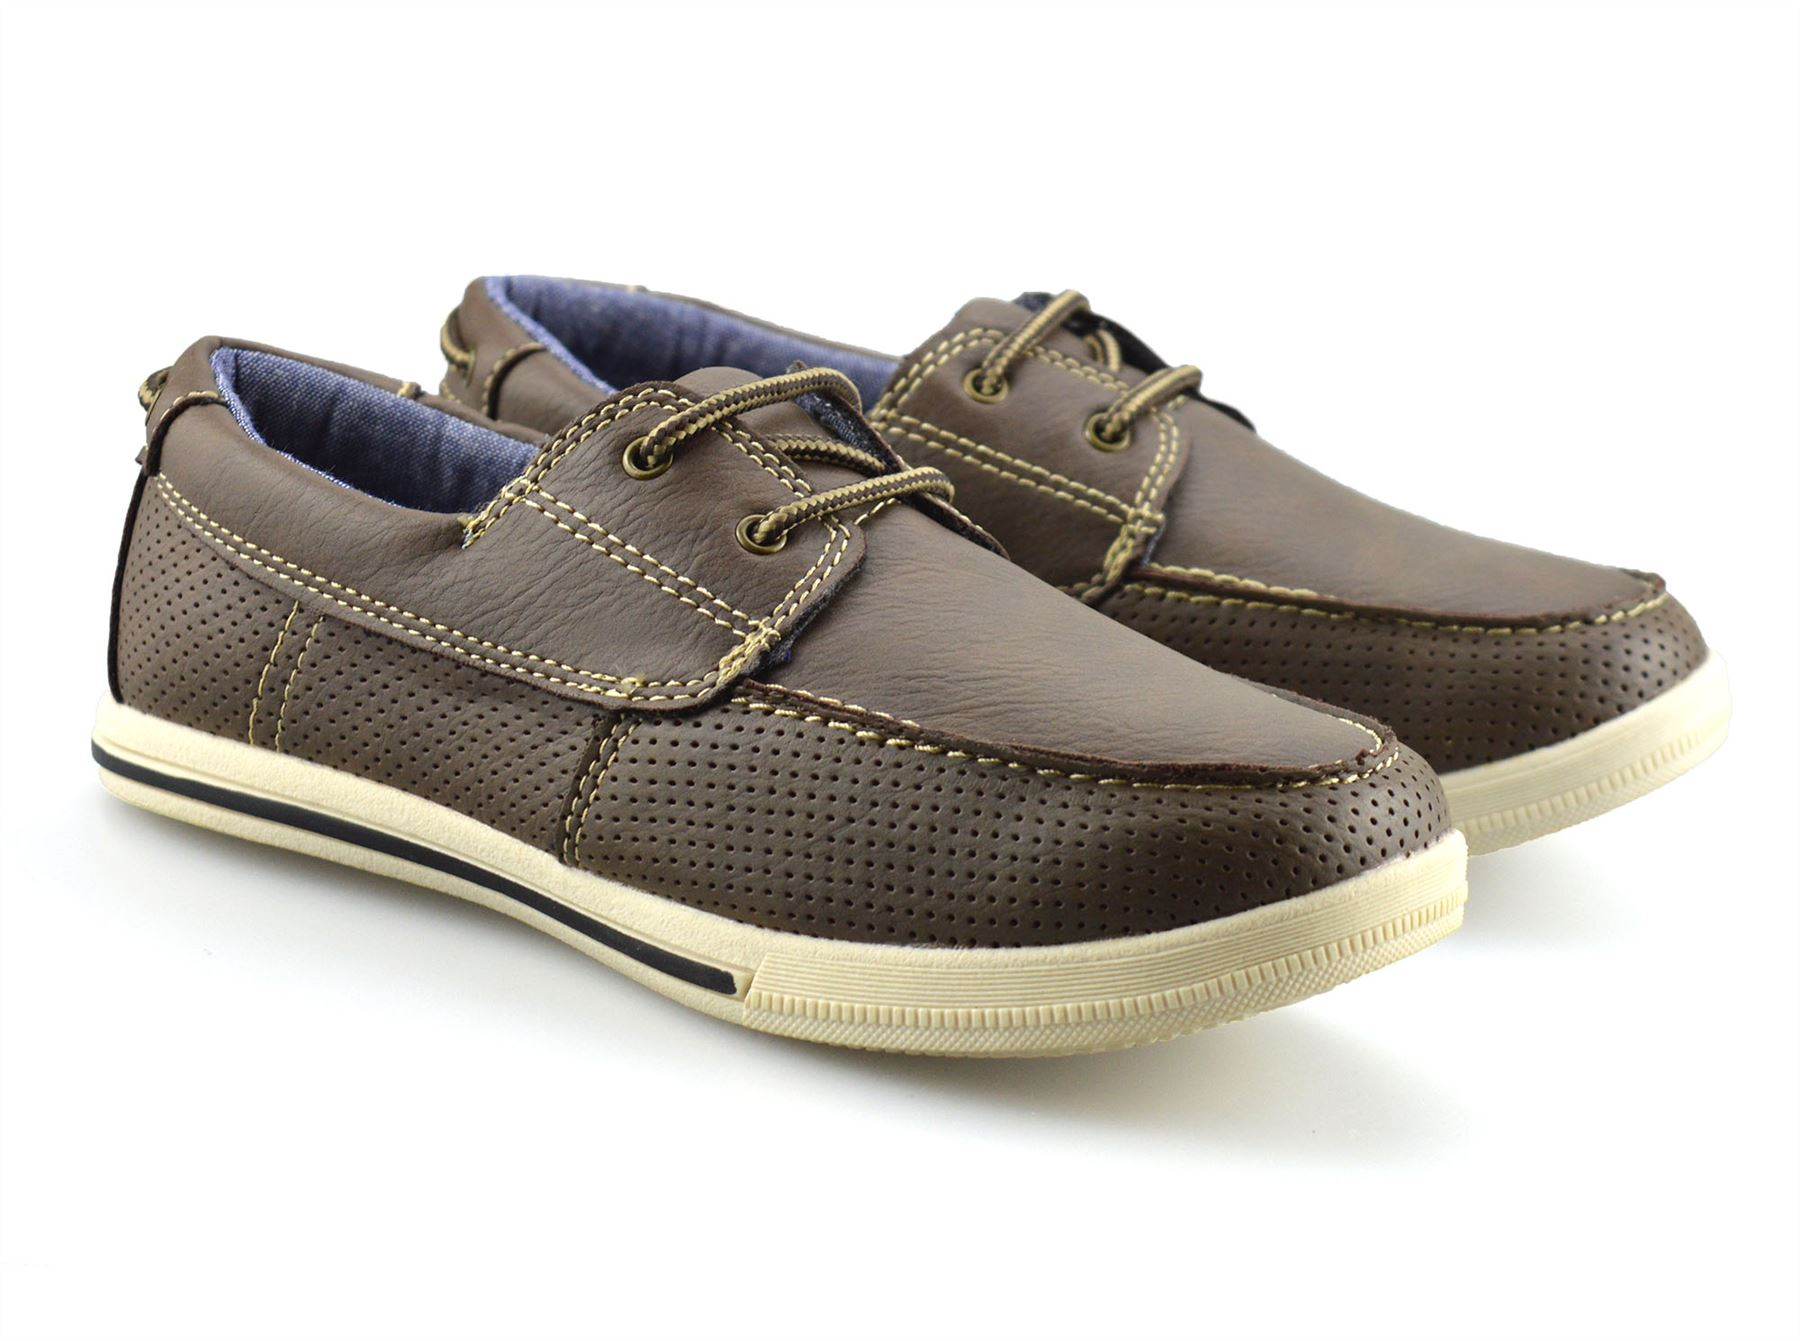 Boys-Kids-Casual-Summer-Lace-Up-Smart-Walking-School-Trainers-Boat-Shoes-Size thumbnail 11